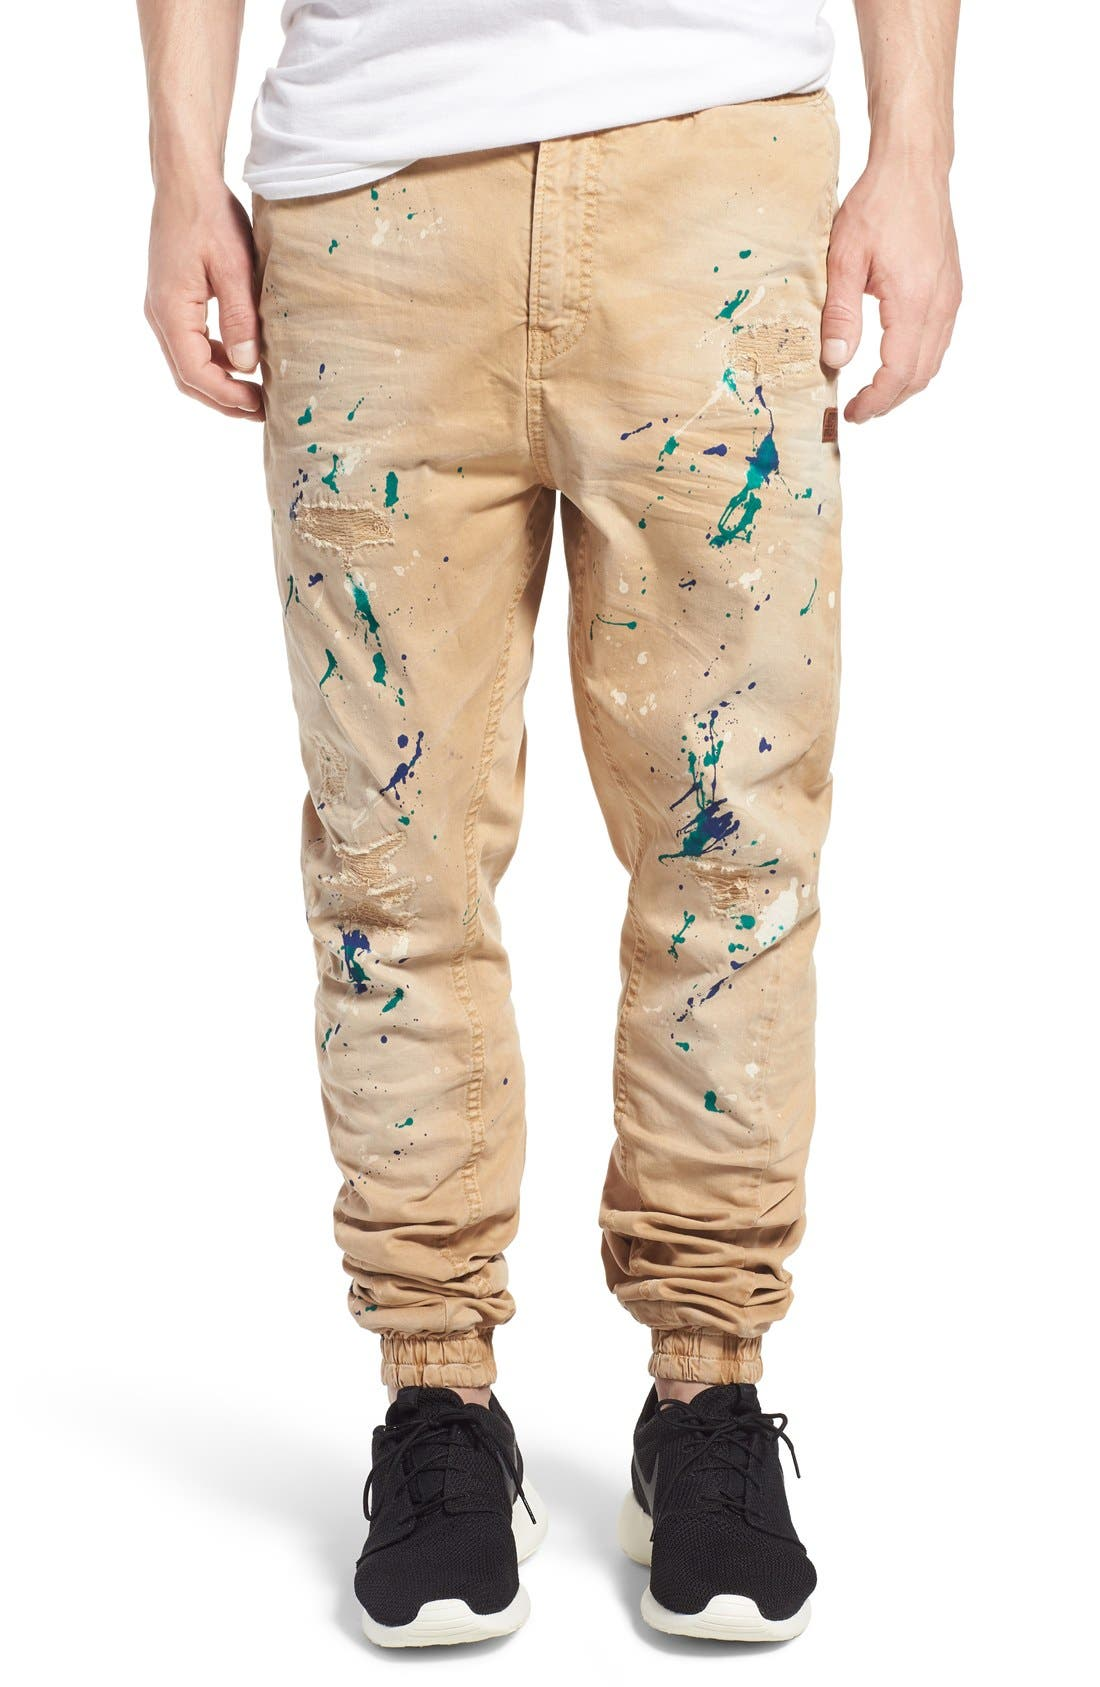 'Damiana' Splatter Paint Stretch Woven Jogger Pants,                             Main thumbnail 1, color,                             250